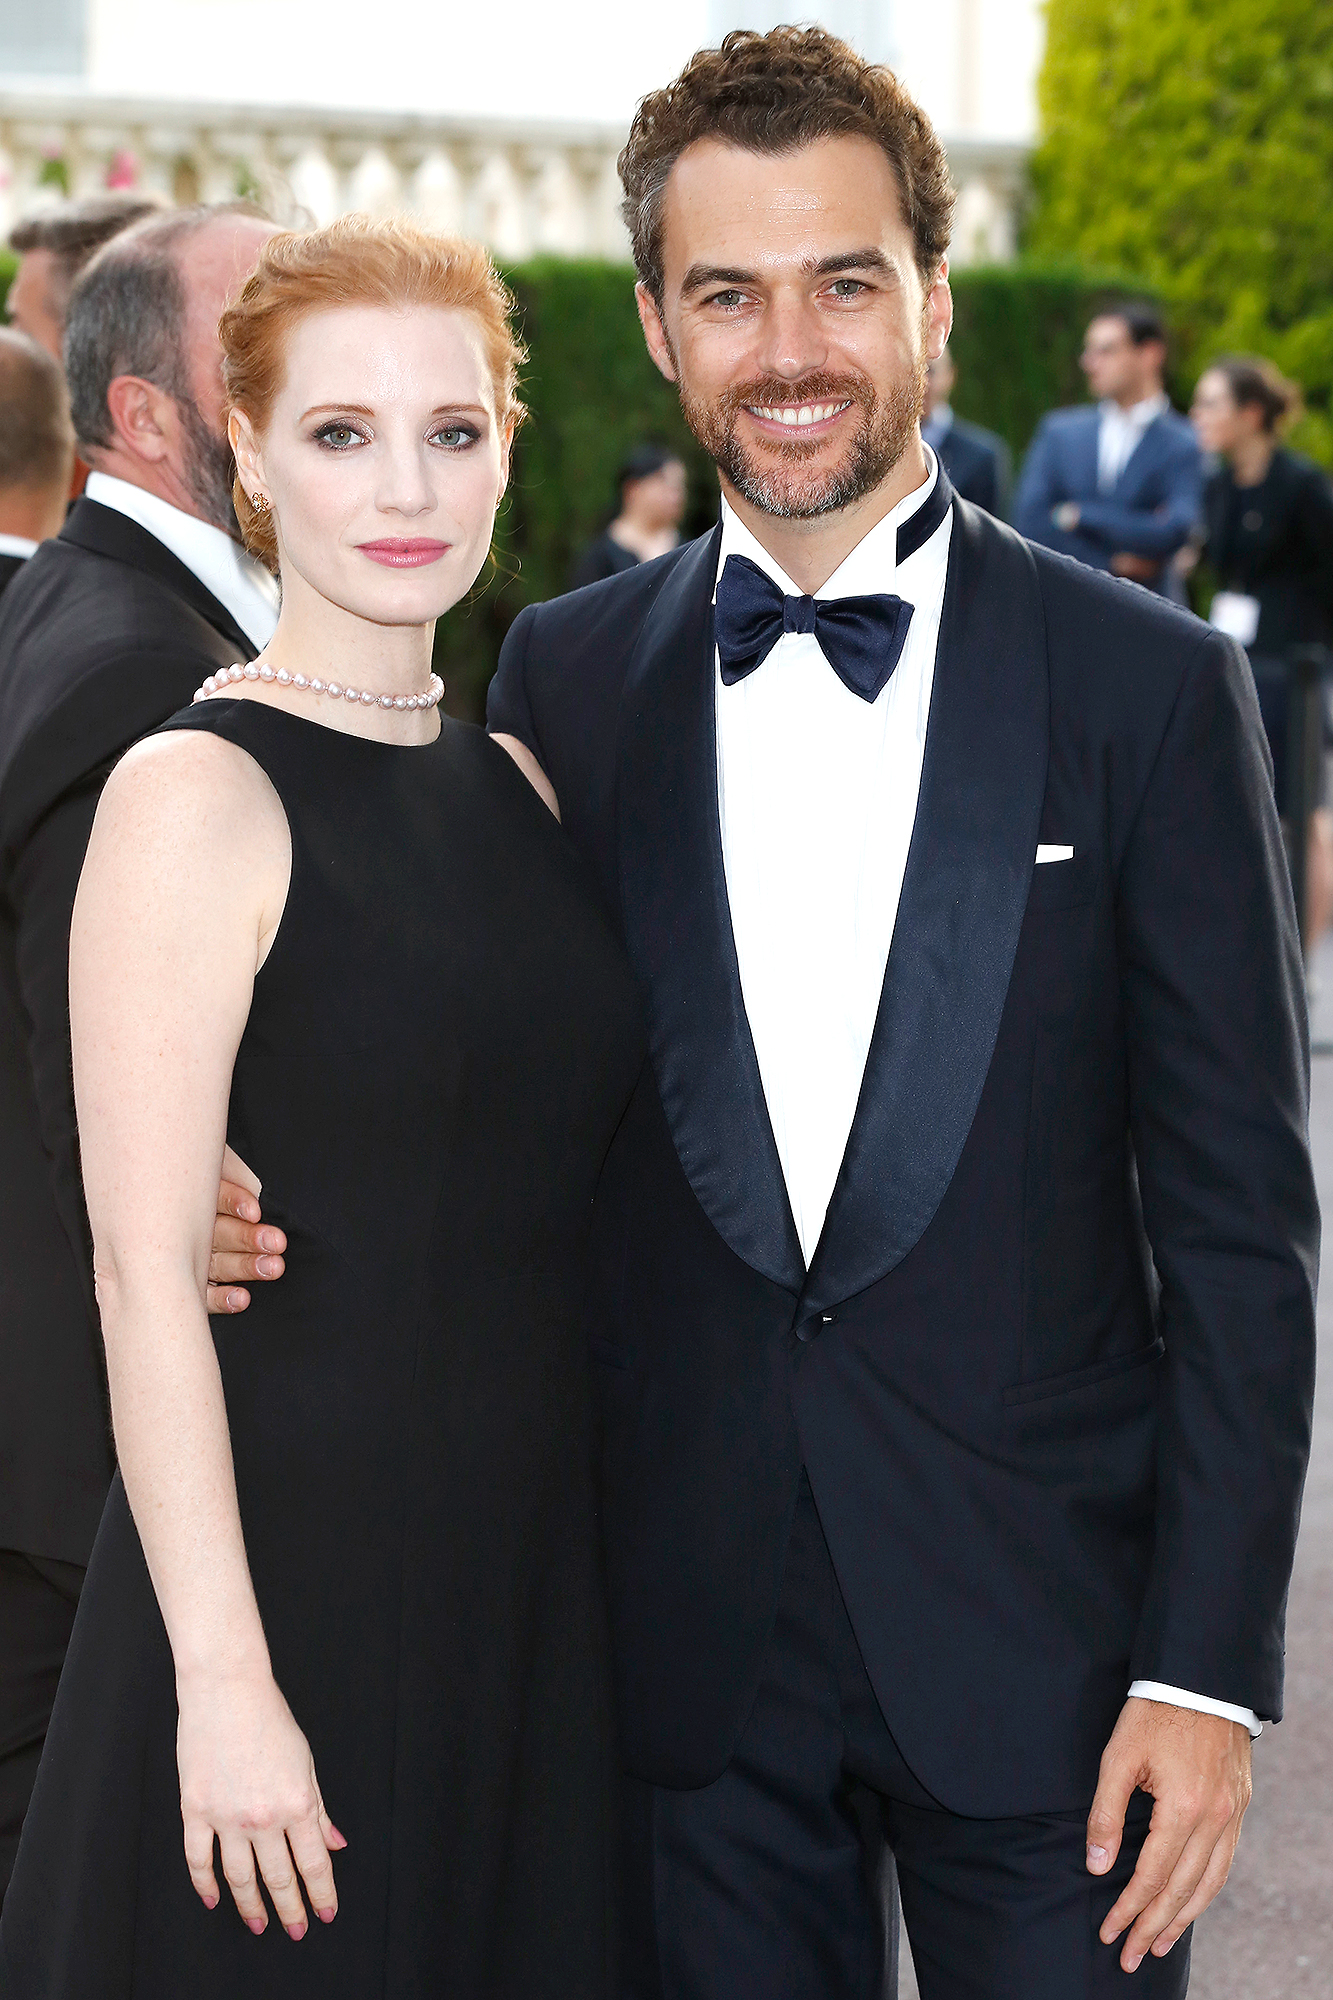 Jessica Chastain's Husband: Things To Know About Gian Luca Passi de Preposulo